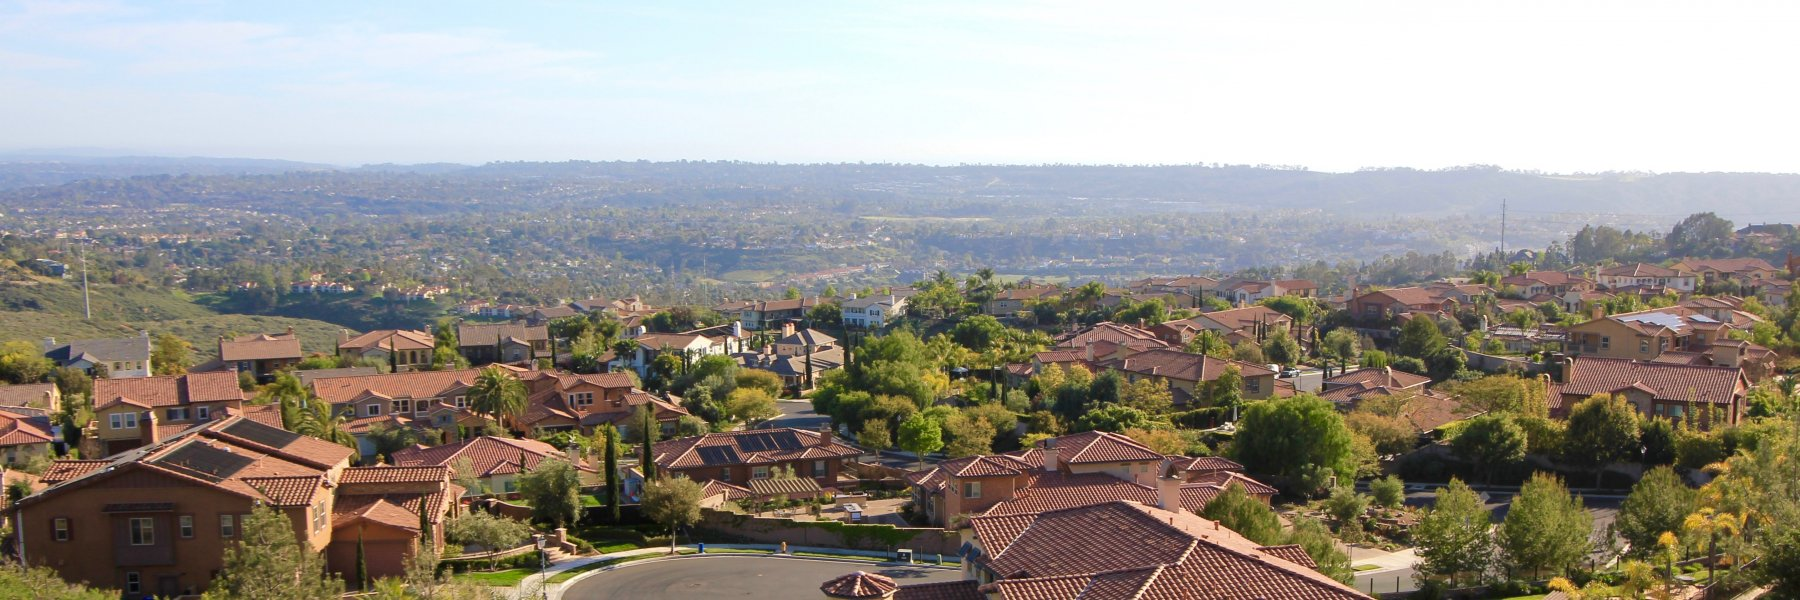 La Costa Ridge is a community of homes in Carlsbad California